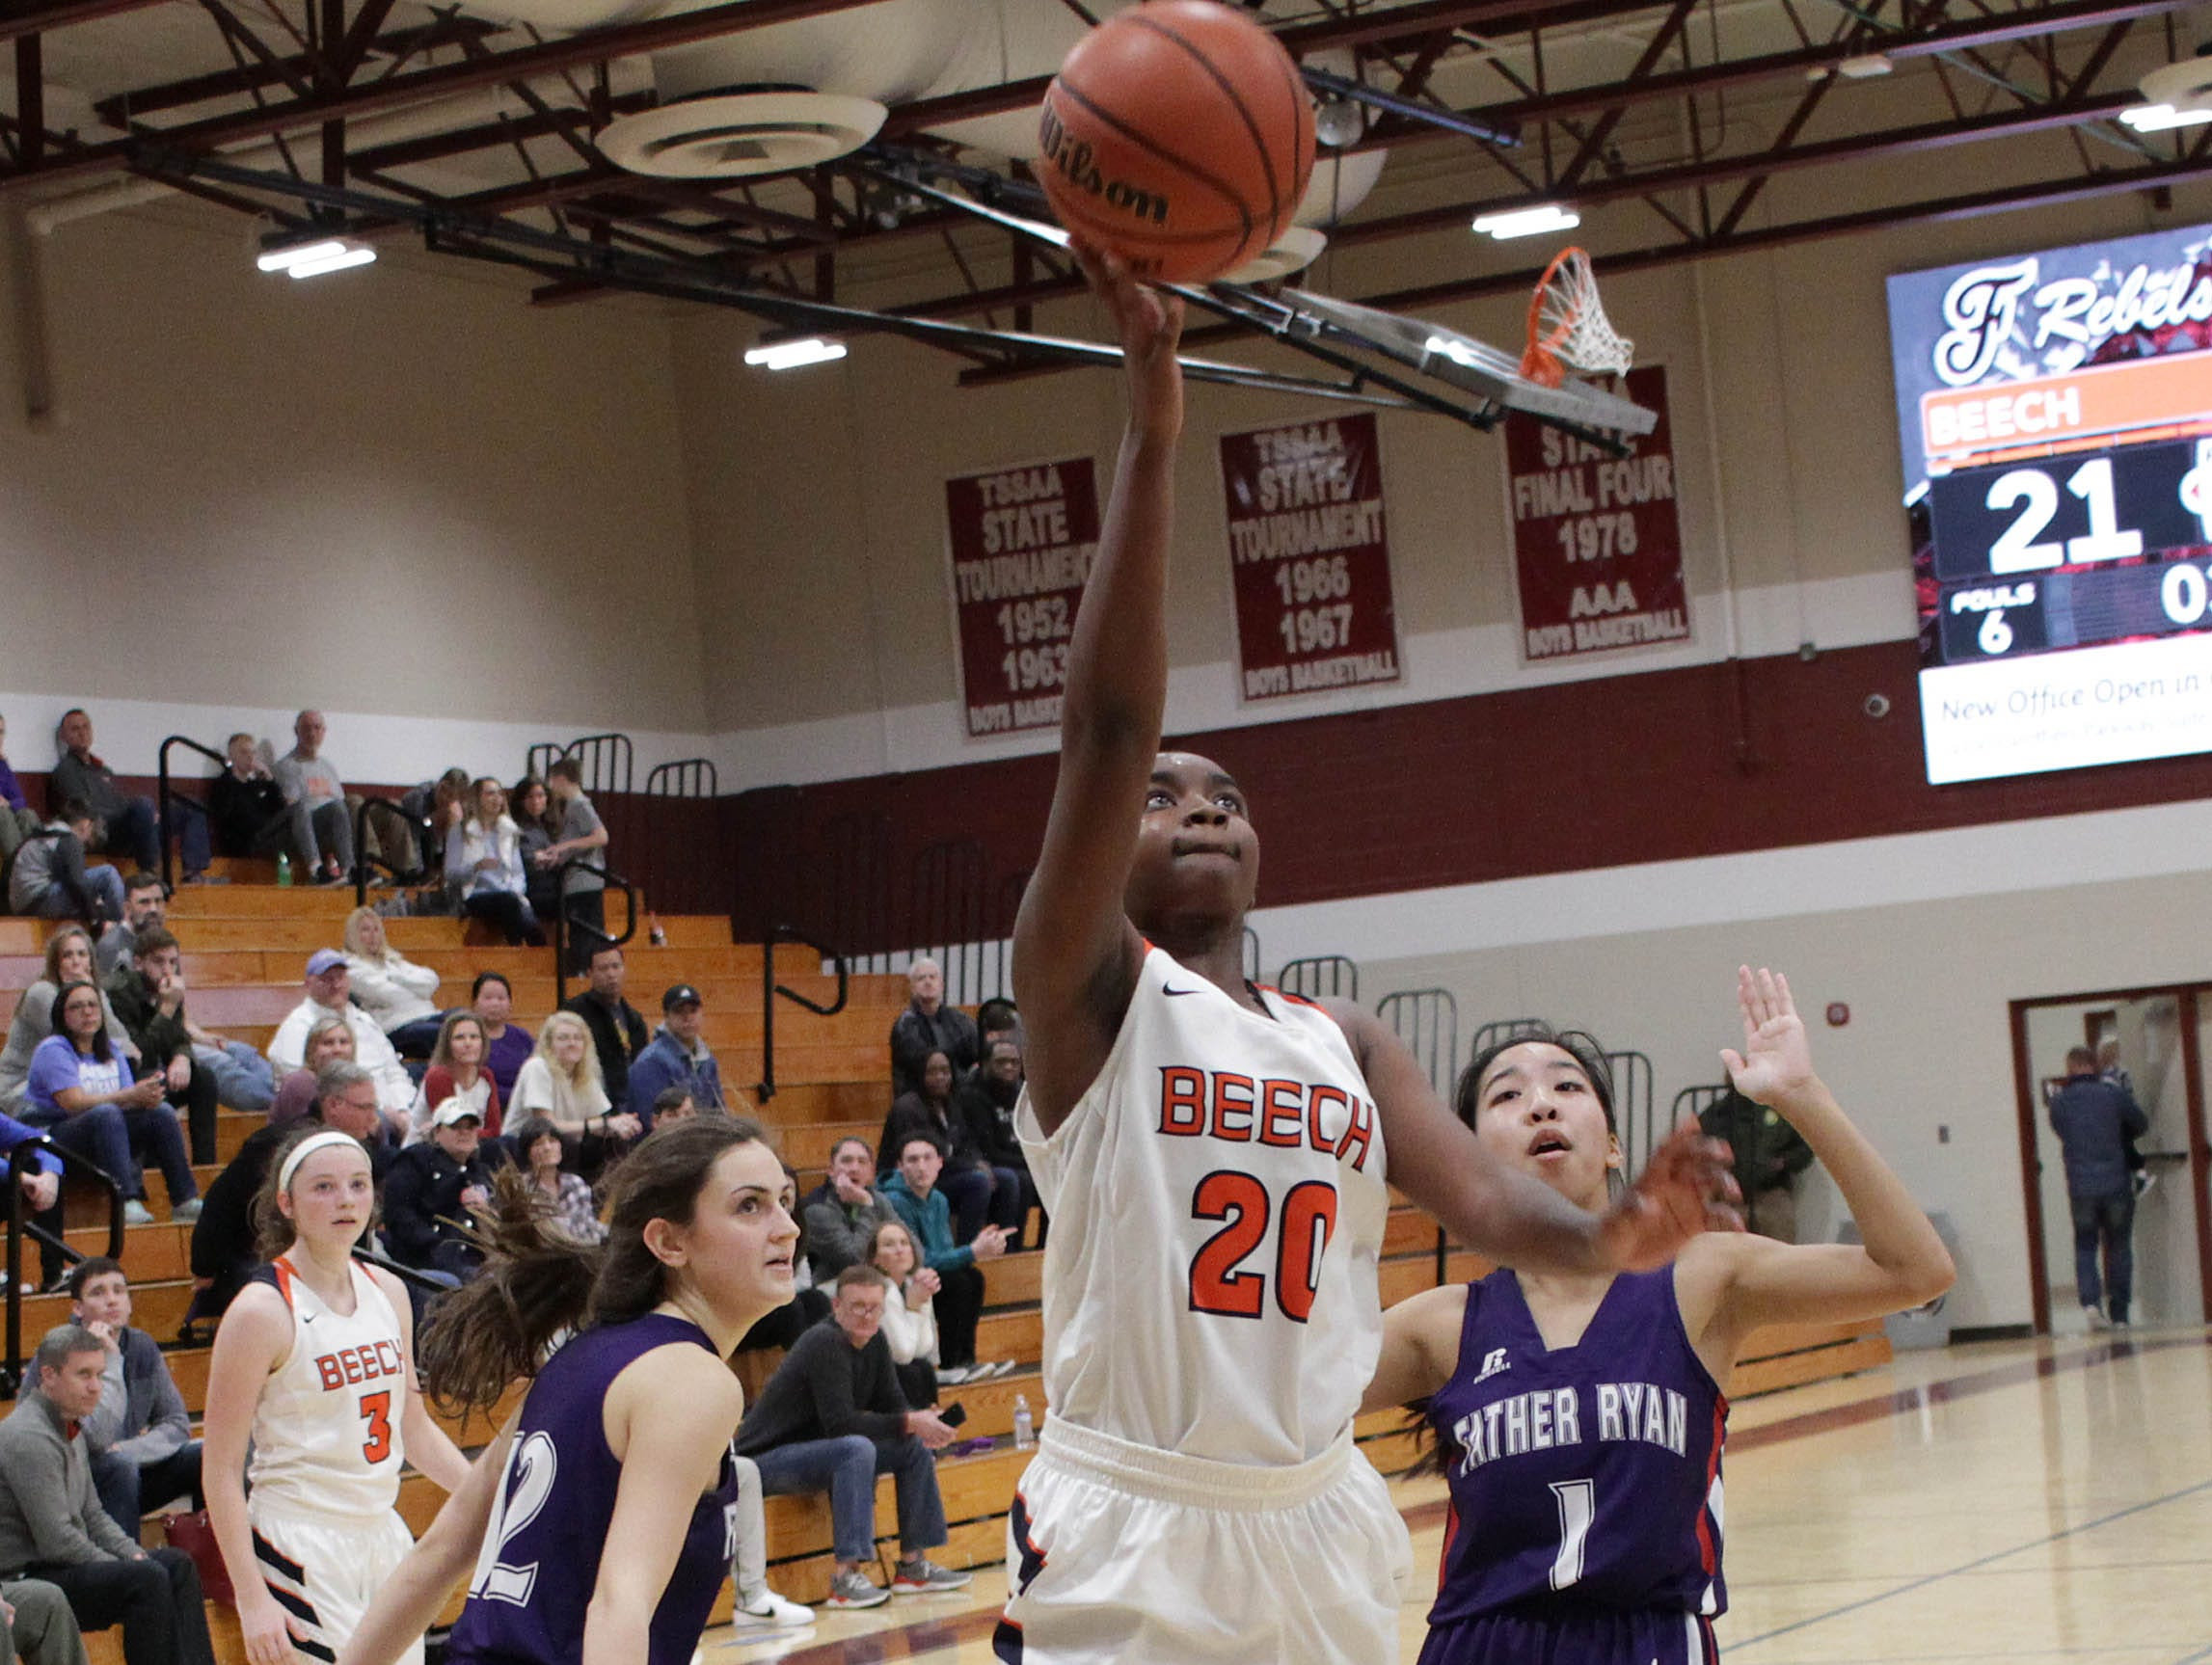 Beech's Deshiya Hoosier drives to the hoop against Father Ryan on Saturday, December 29, 2018.